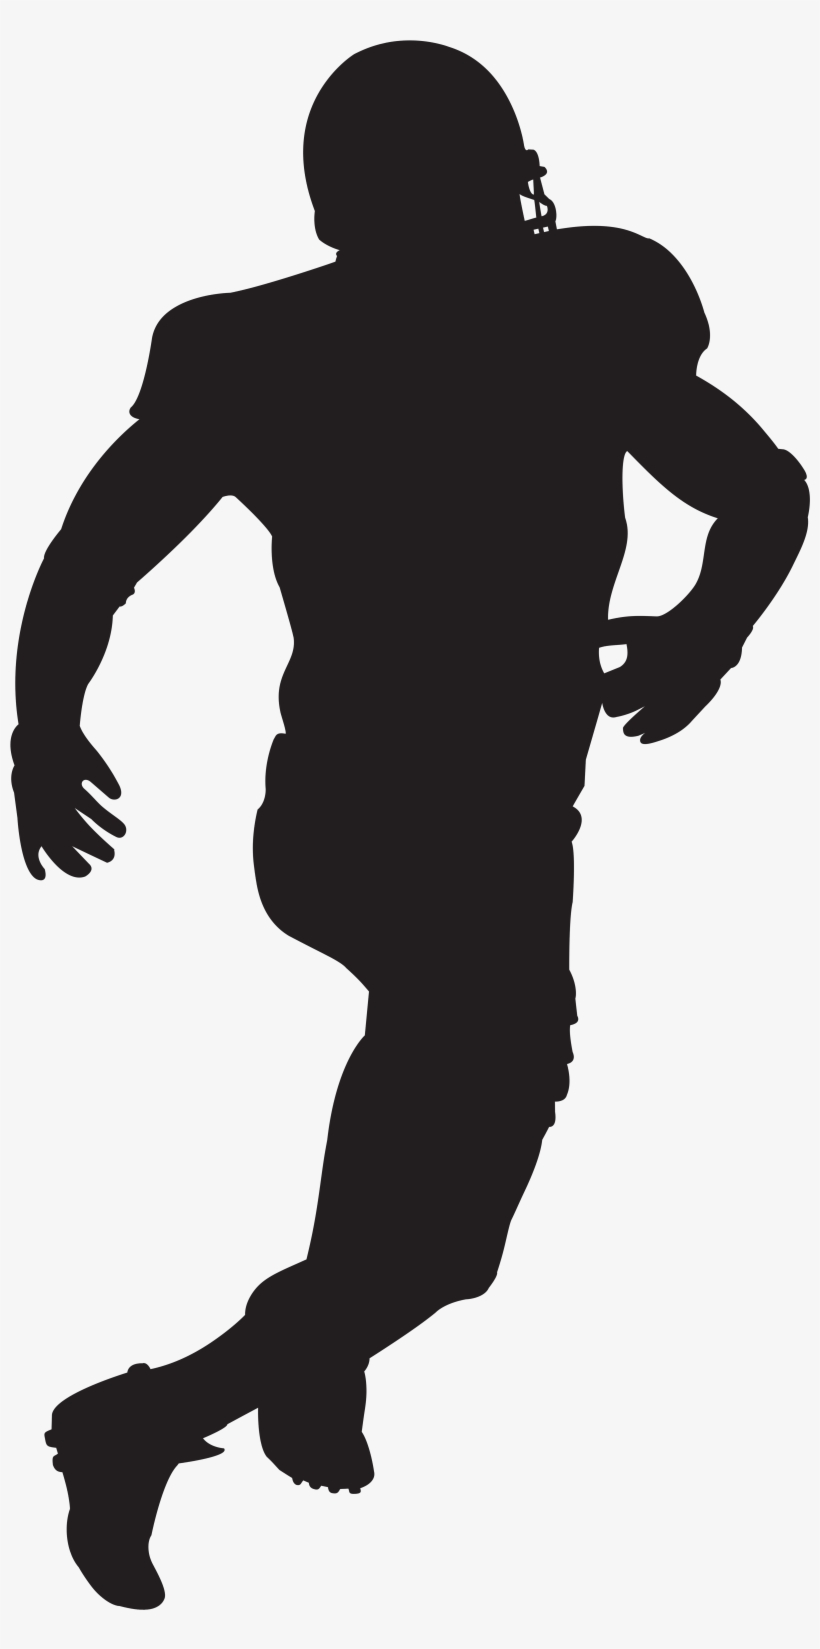 American Football Player Silhouette Clip Art Image.